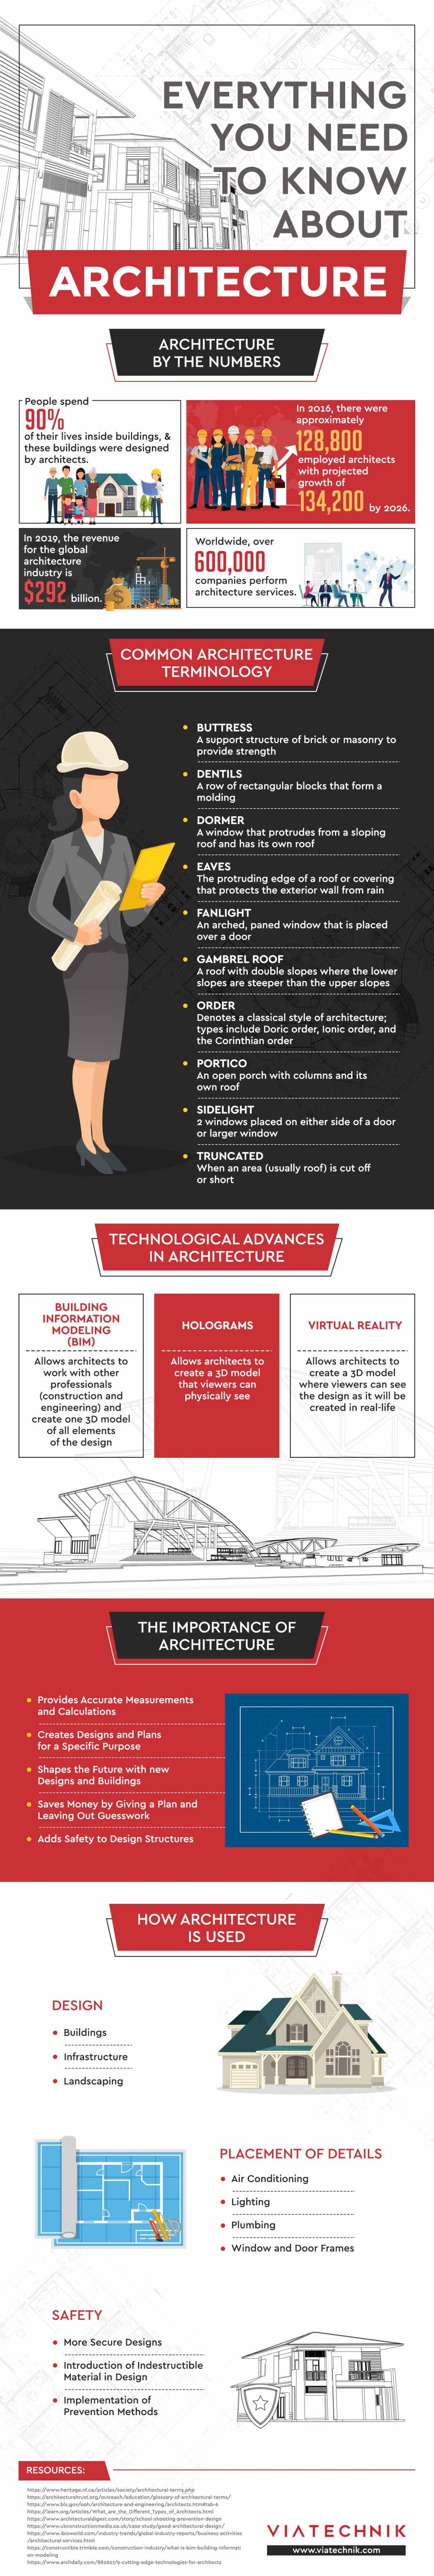 Architecture: Some Fascinating Facts and Figures - Infographic